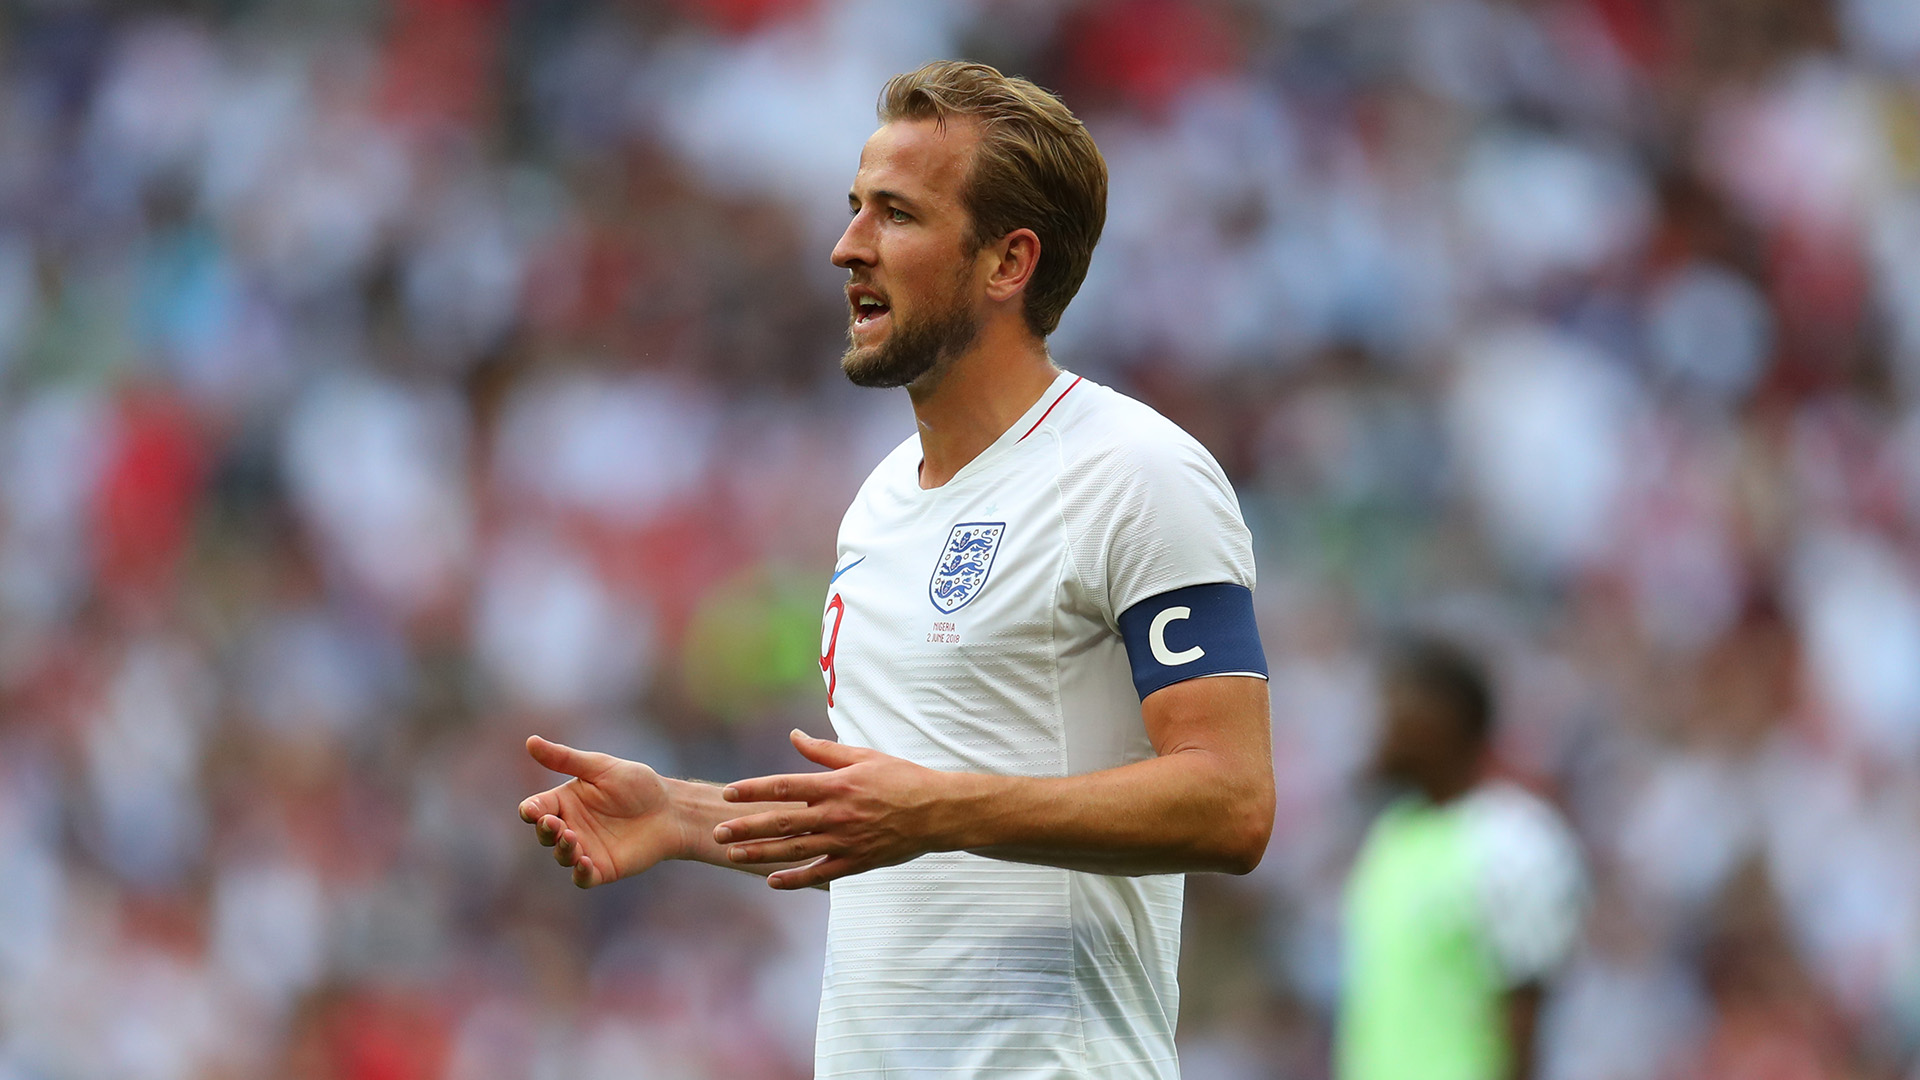 Alan Shearer dropped the truth after Harry Kane scored against Tunisia